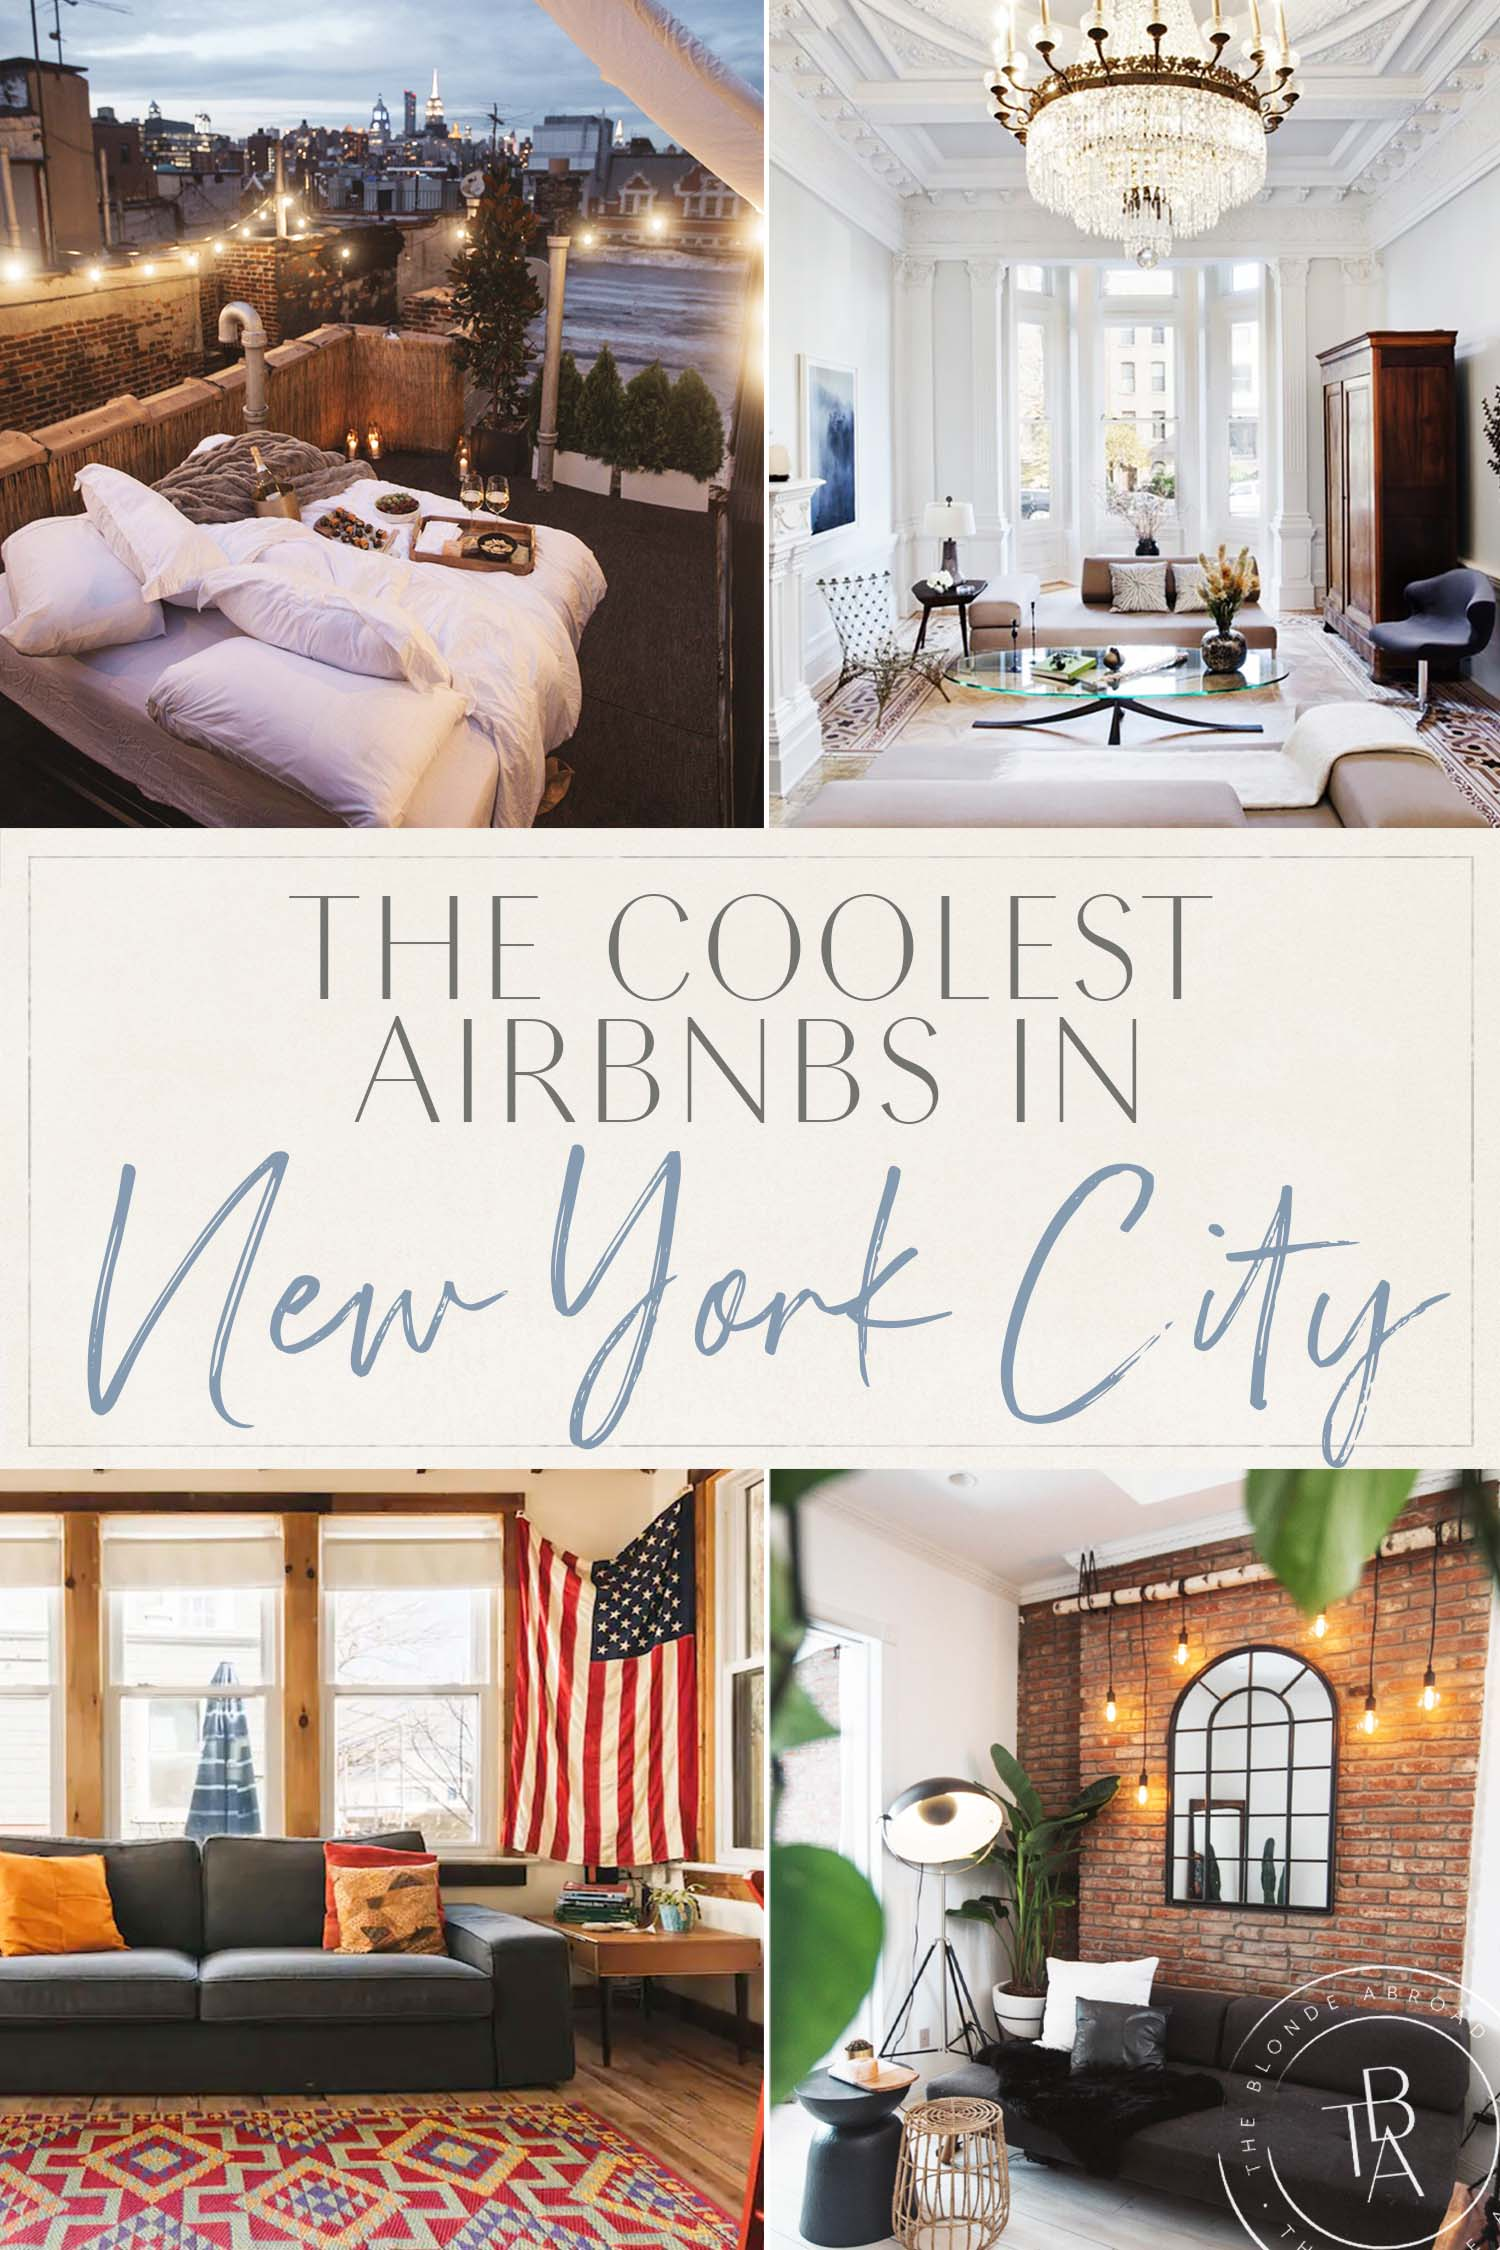 The Coolest Airbnbs in NYC